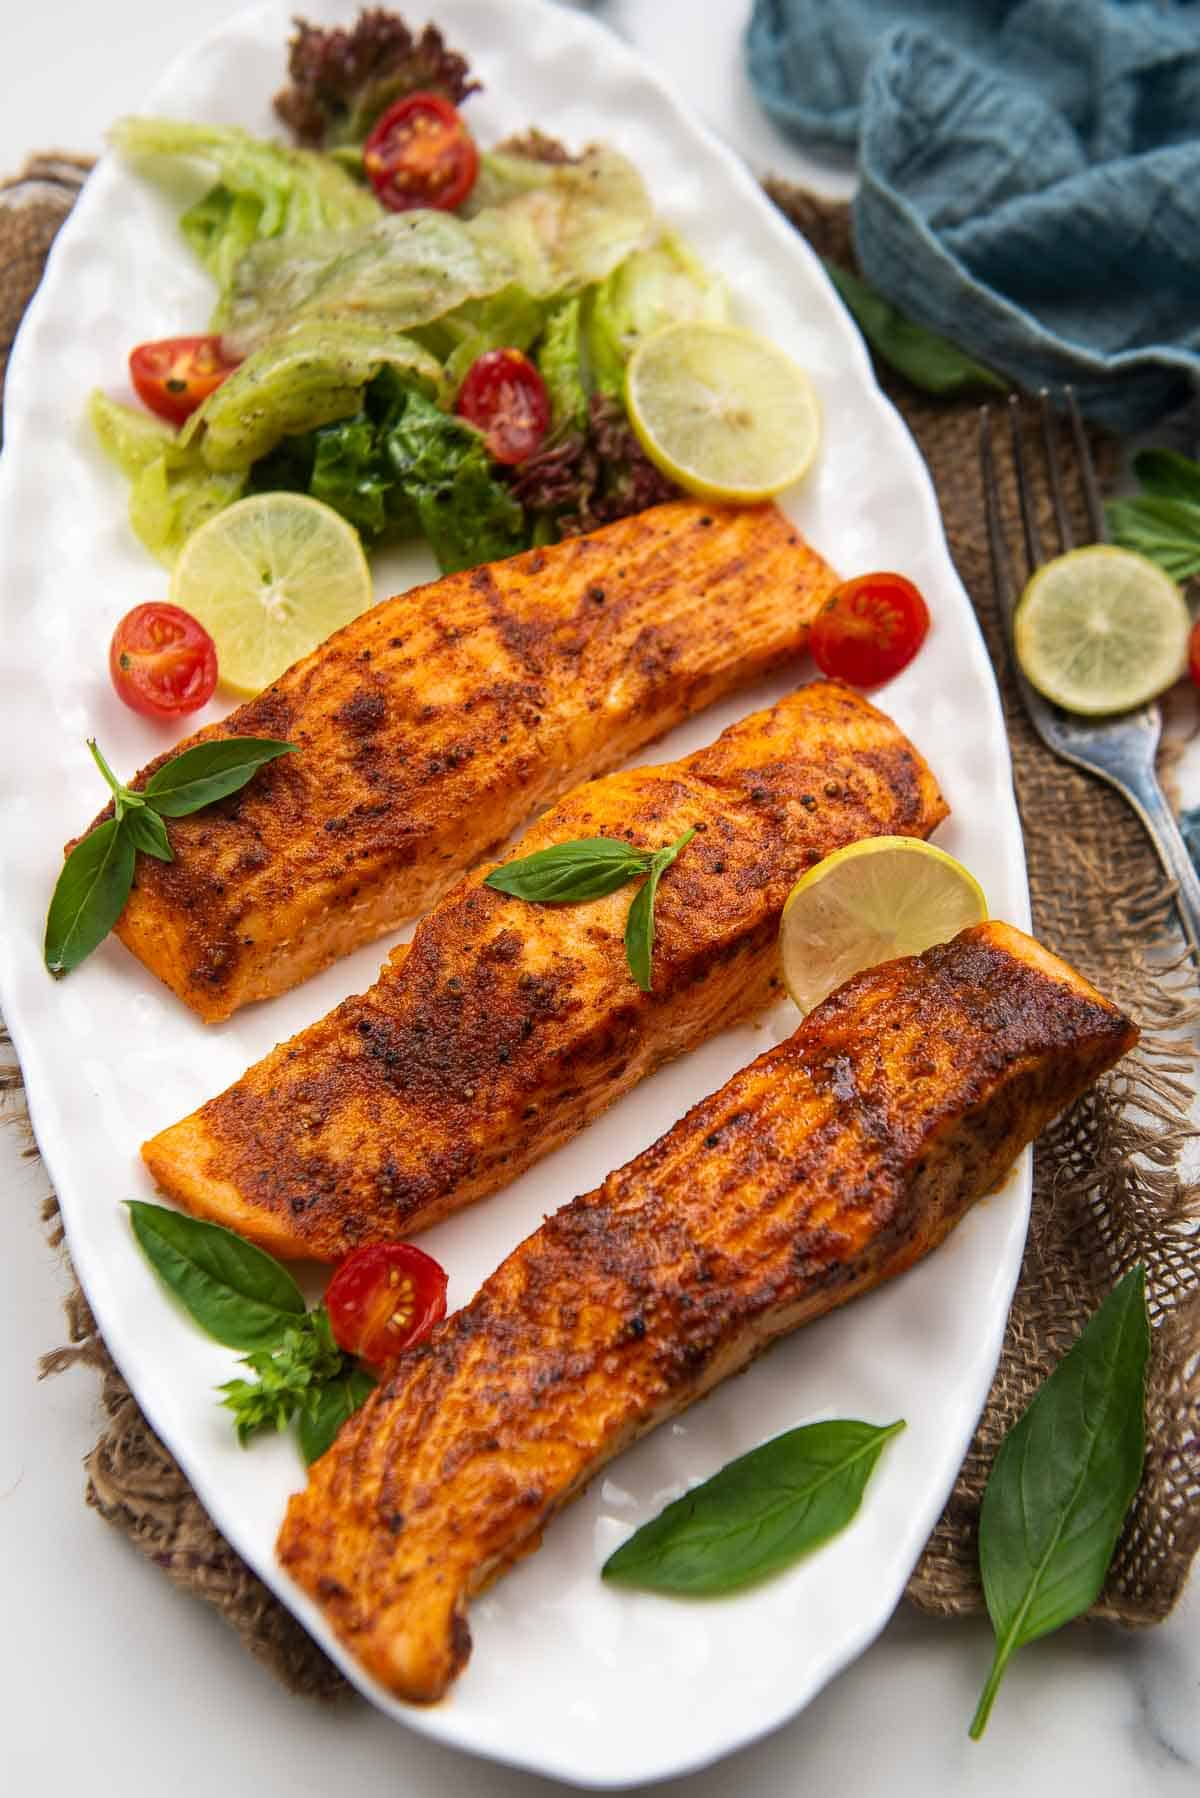 Air fryer salmon served in a bowl.